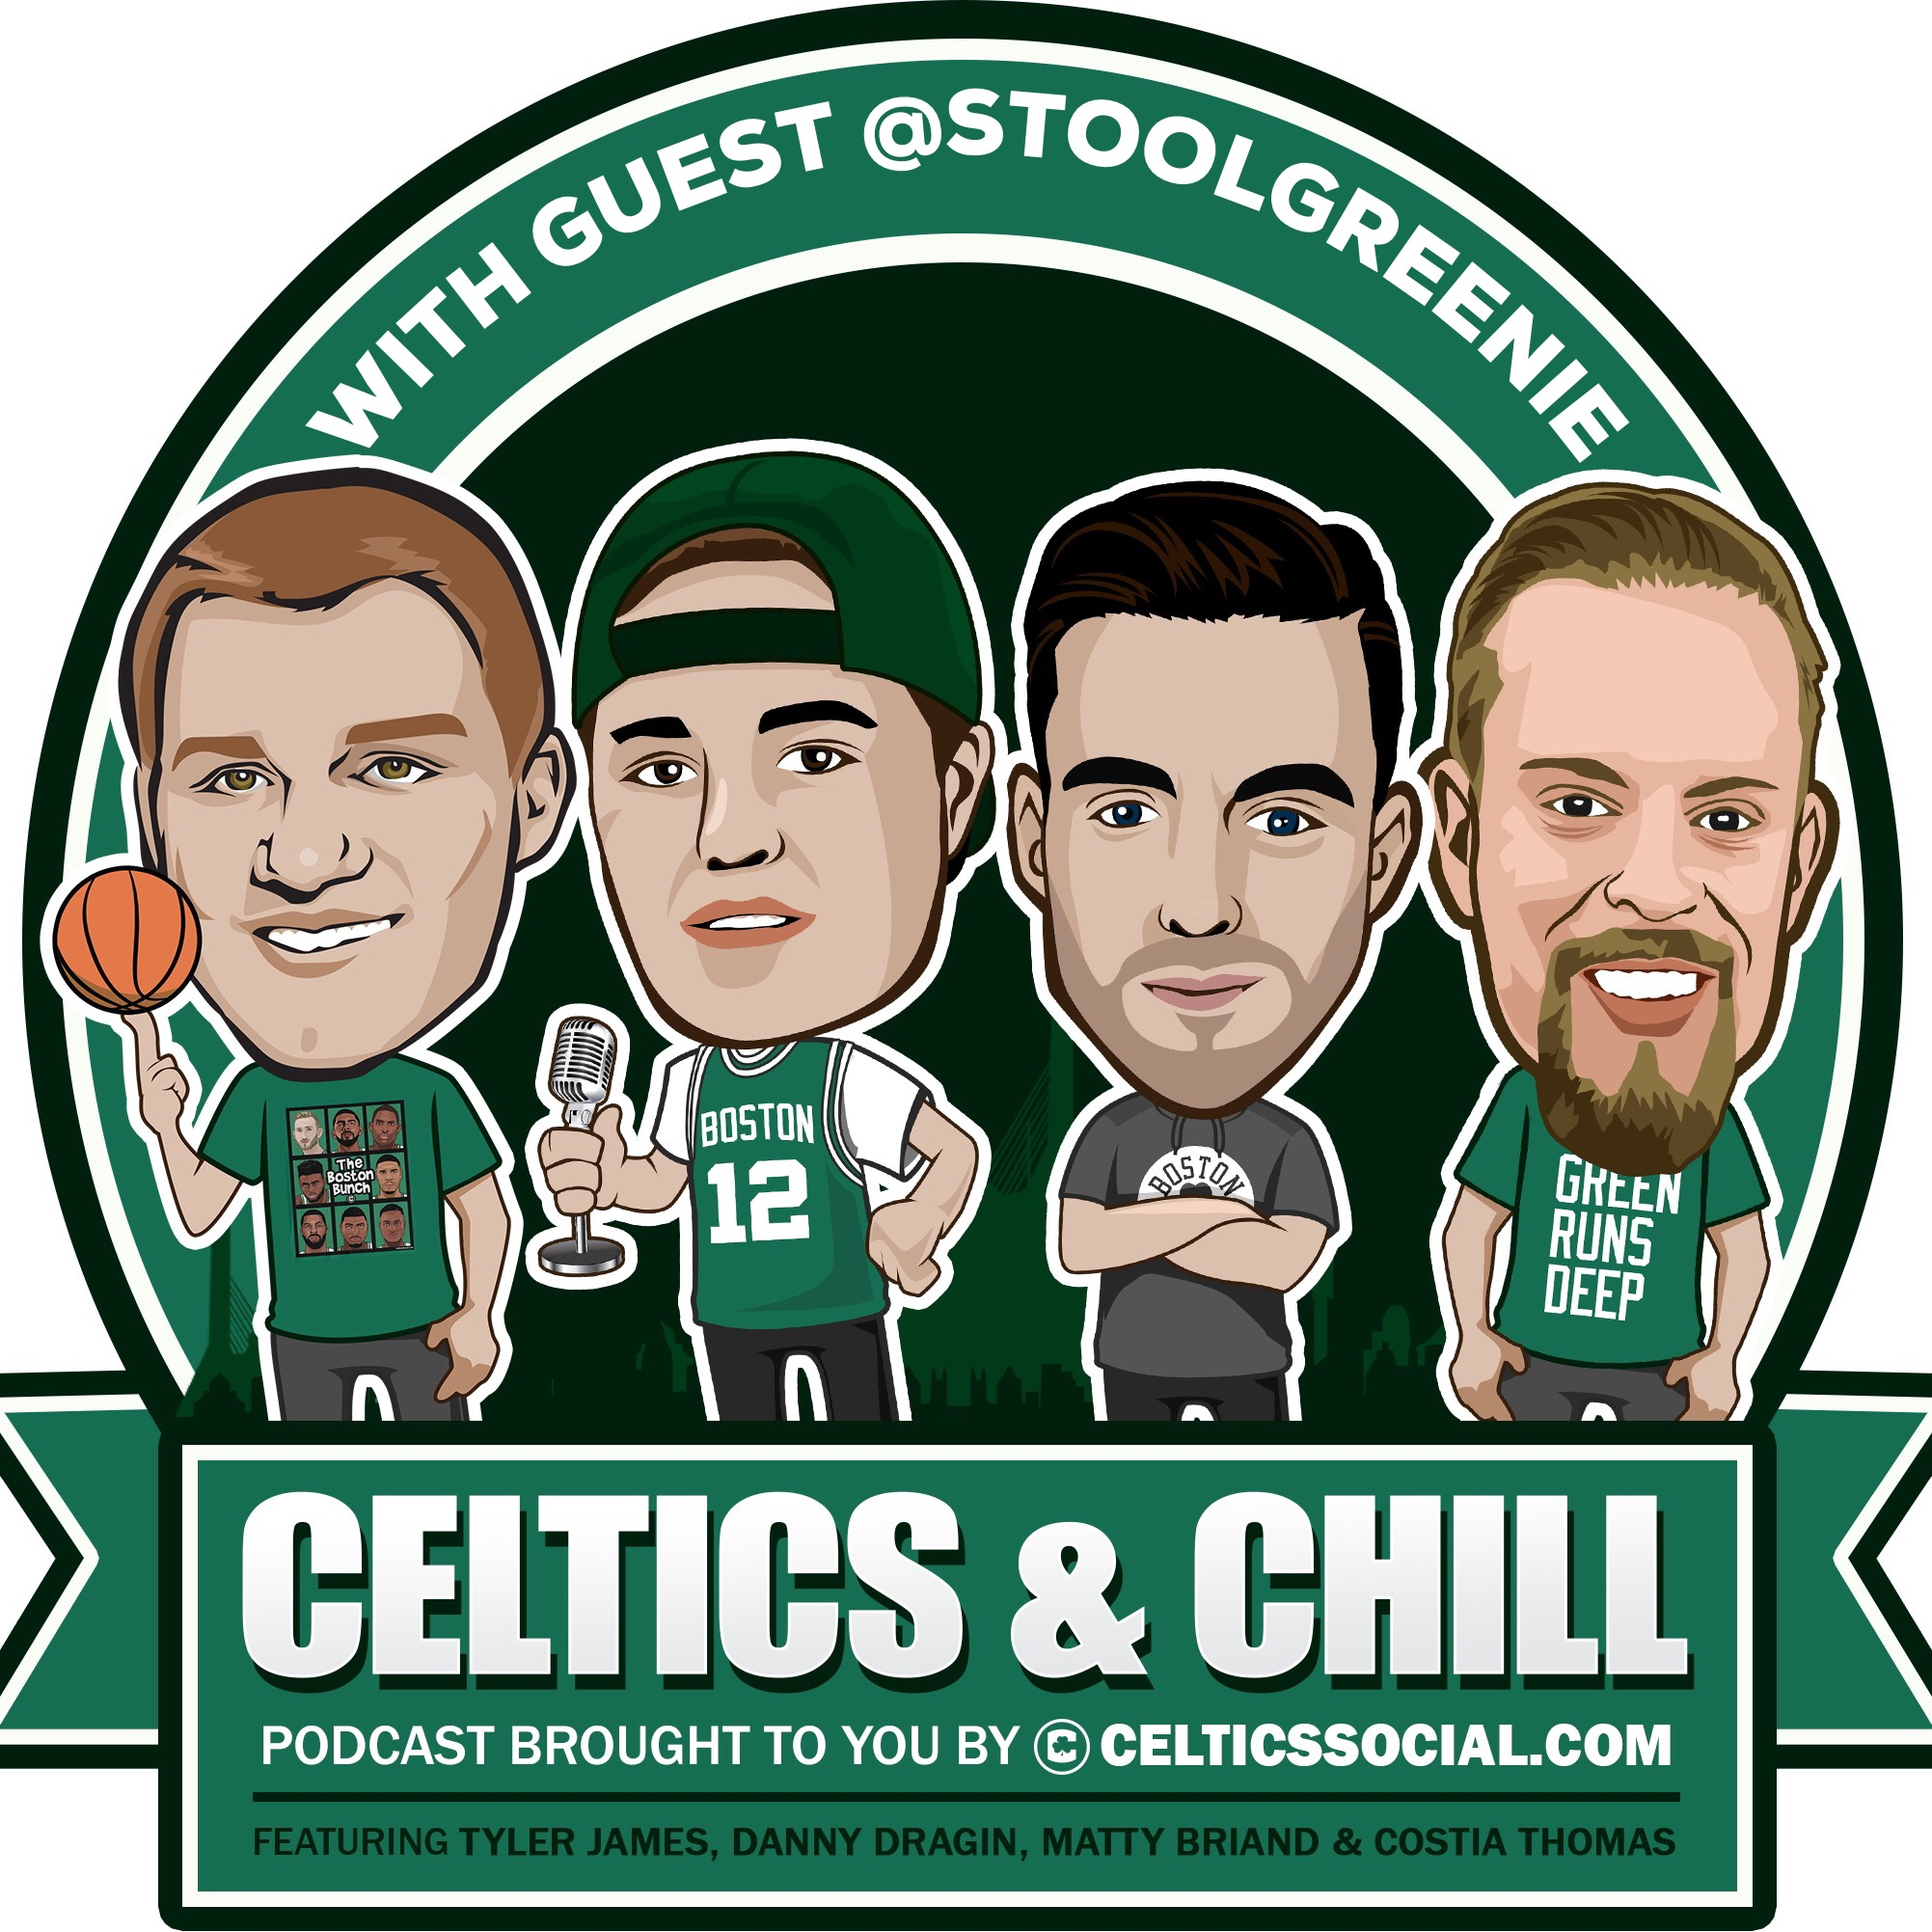 #20- With guest Dan Greenberg @StoolGreenie! Celtics 1 game away, crazy NBA trade talk (KAT) & more!